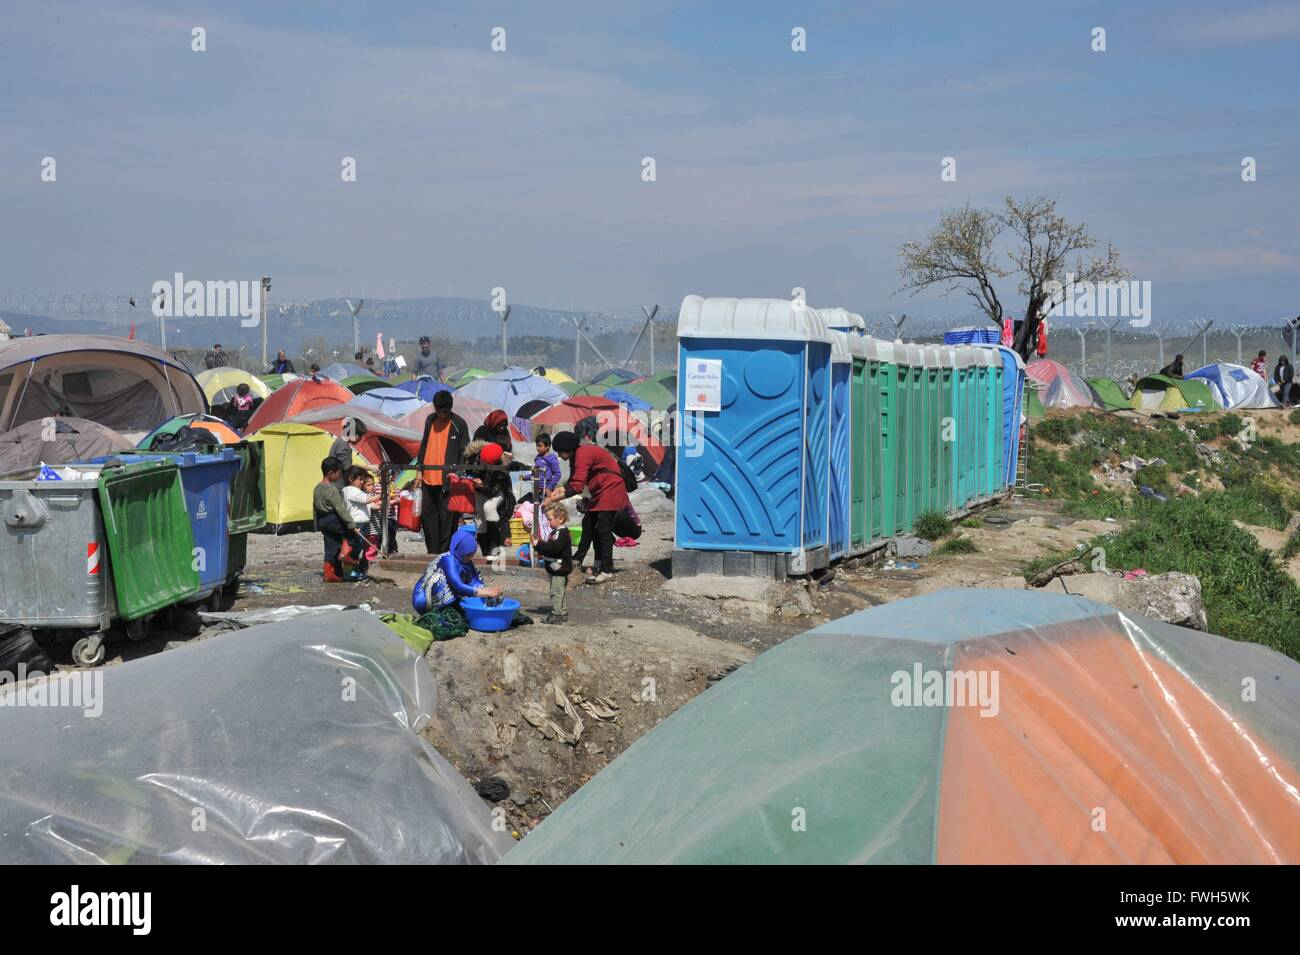 Tents on the Macedonian border, toilets and garbage containers, garbag, children, a woman washes clothes - 29 March - Stock Image